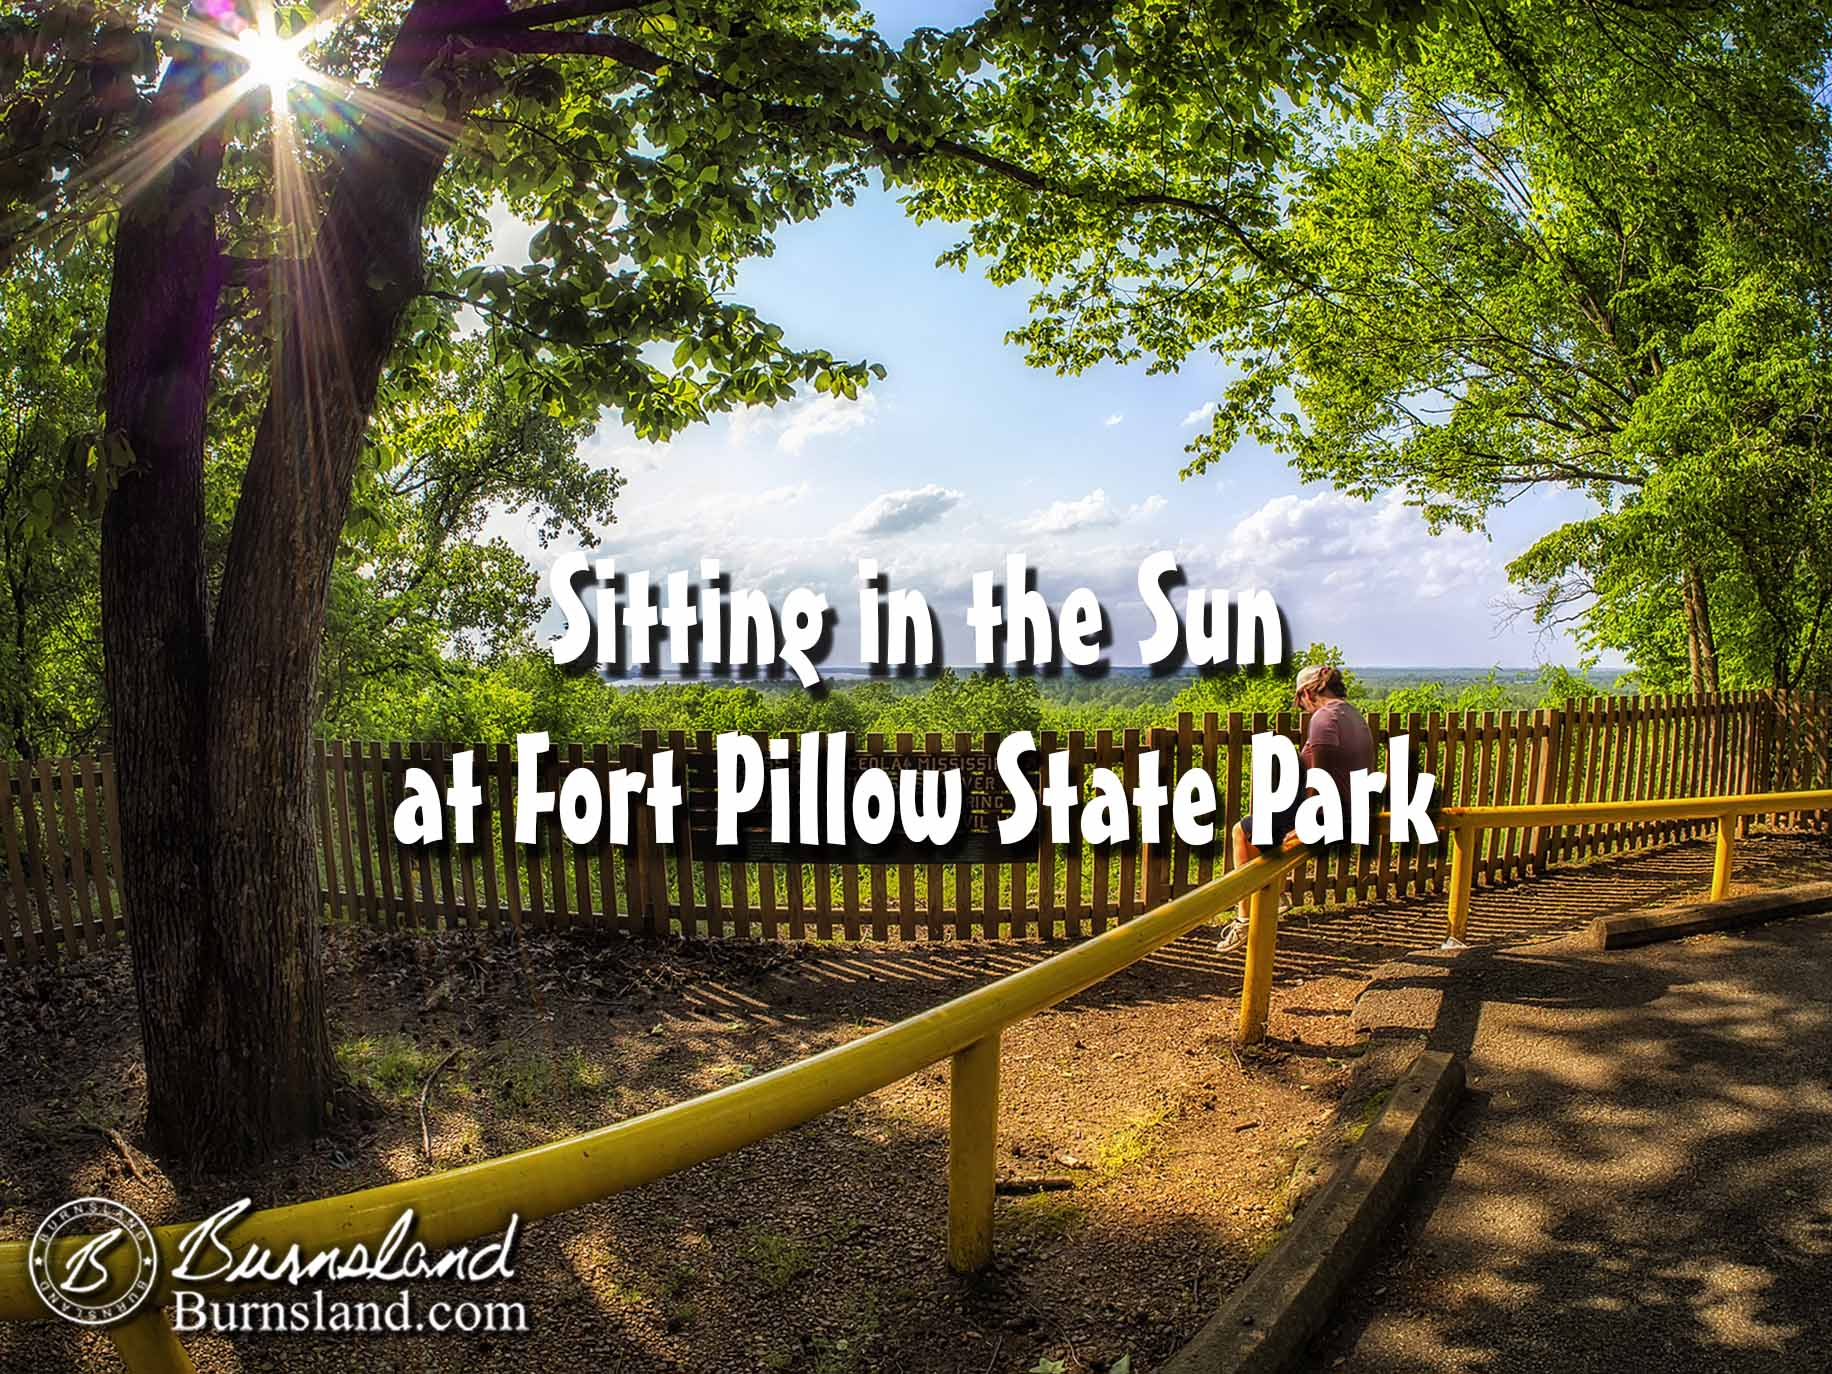 Sitting in the Sun at Fort Pillow State Park